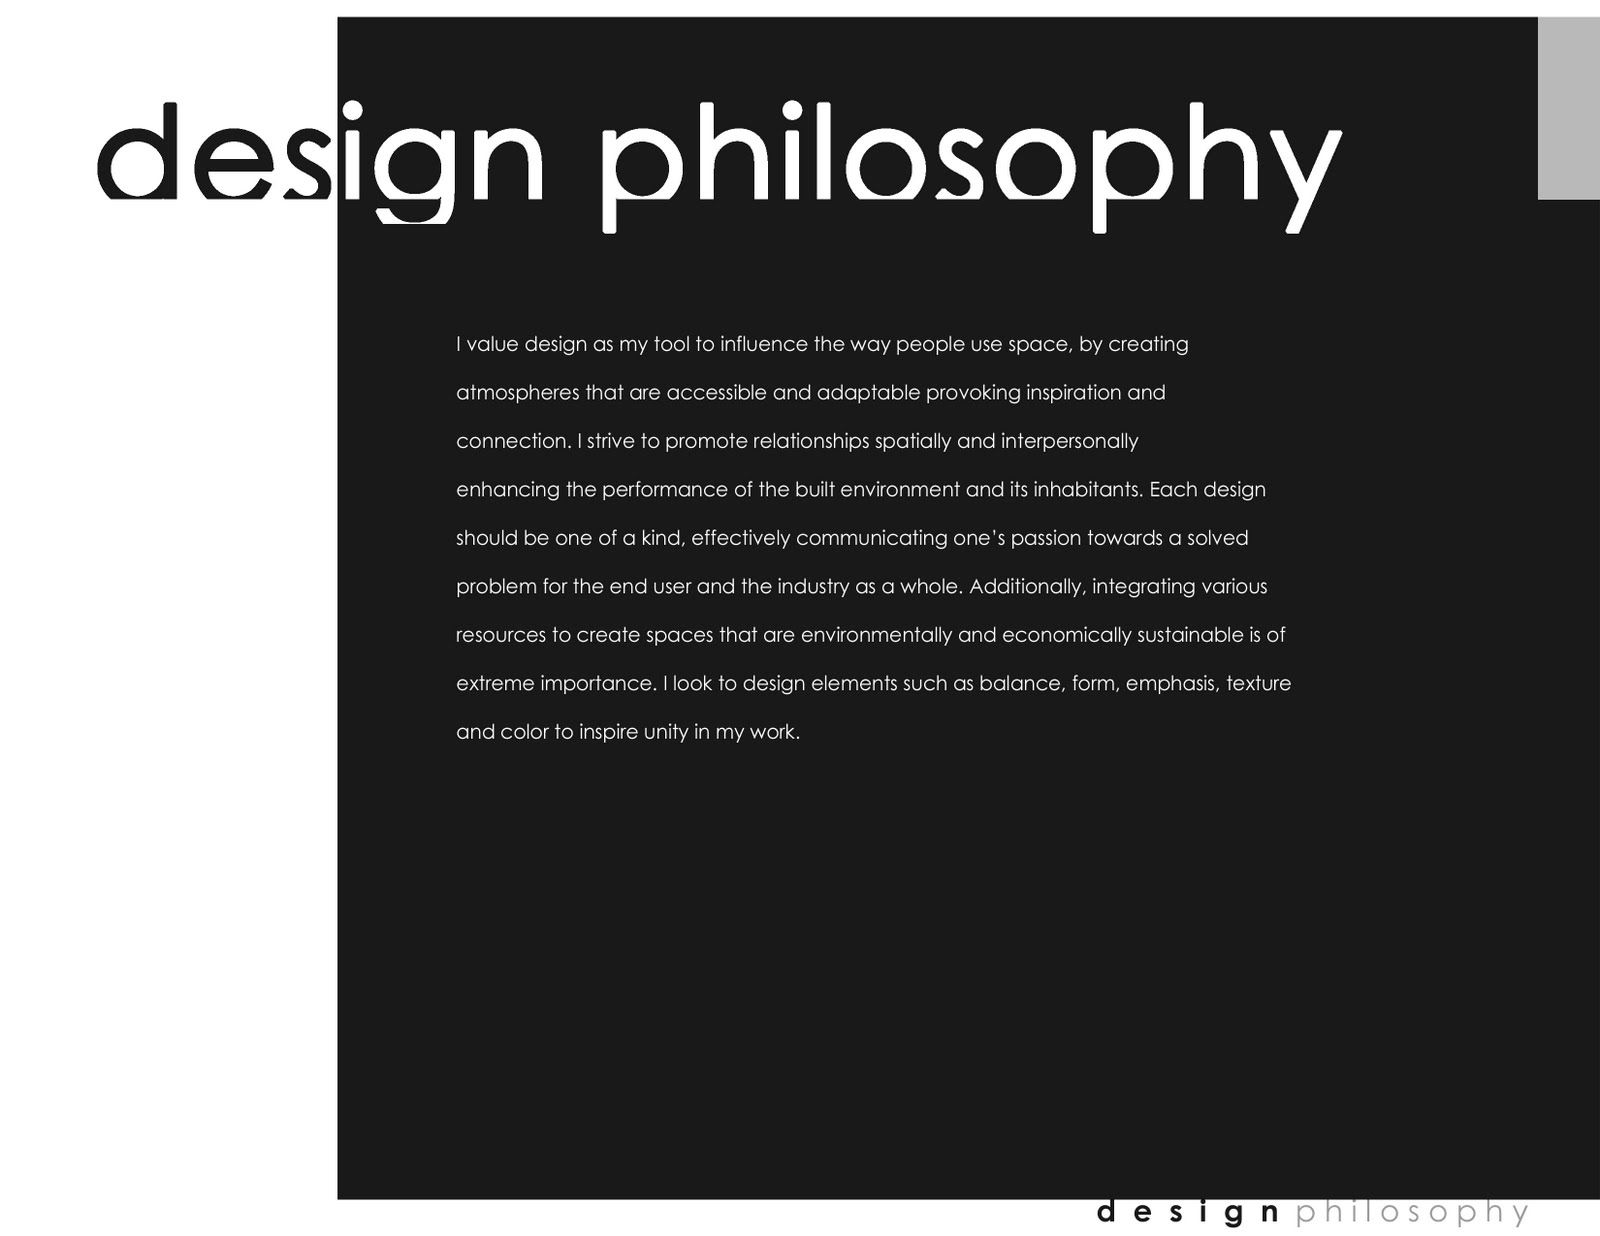 design philosophy portfolio interior design design philosophy design philosophy1600 1236portfolio